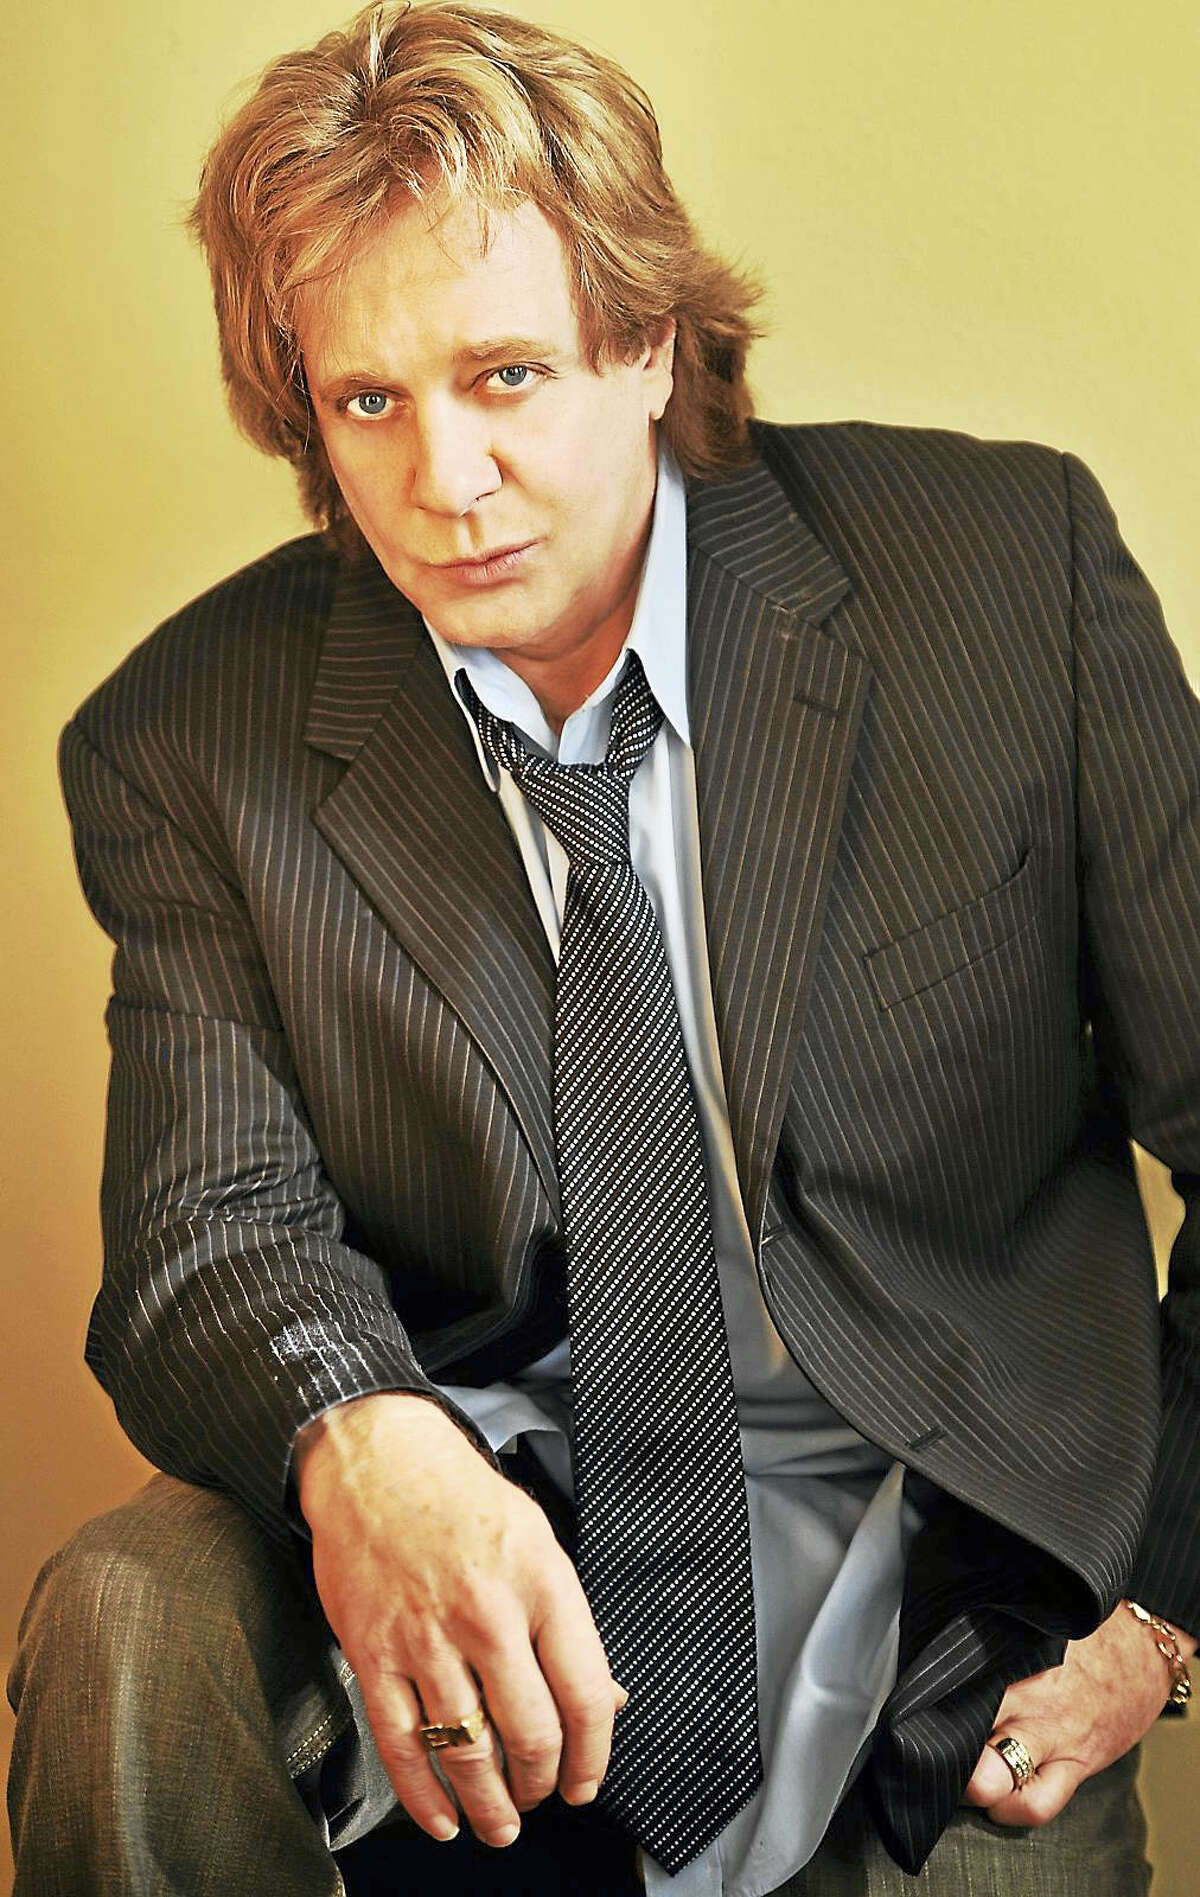 Contributed photo courtesy of Eddie MoneyMusician Eddie Money will be singing all of his biggest hits when he performs outdoors at the Indian Ranch Amphitheater in Webster, Massachusetts on Saturday, July 15 at 2 p.m.